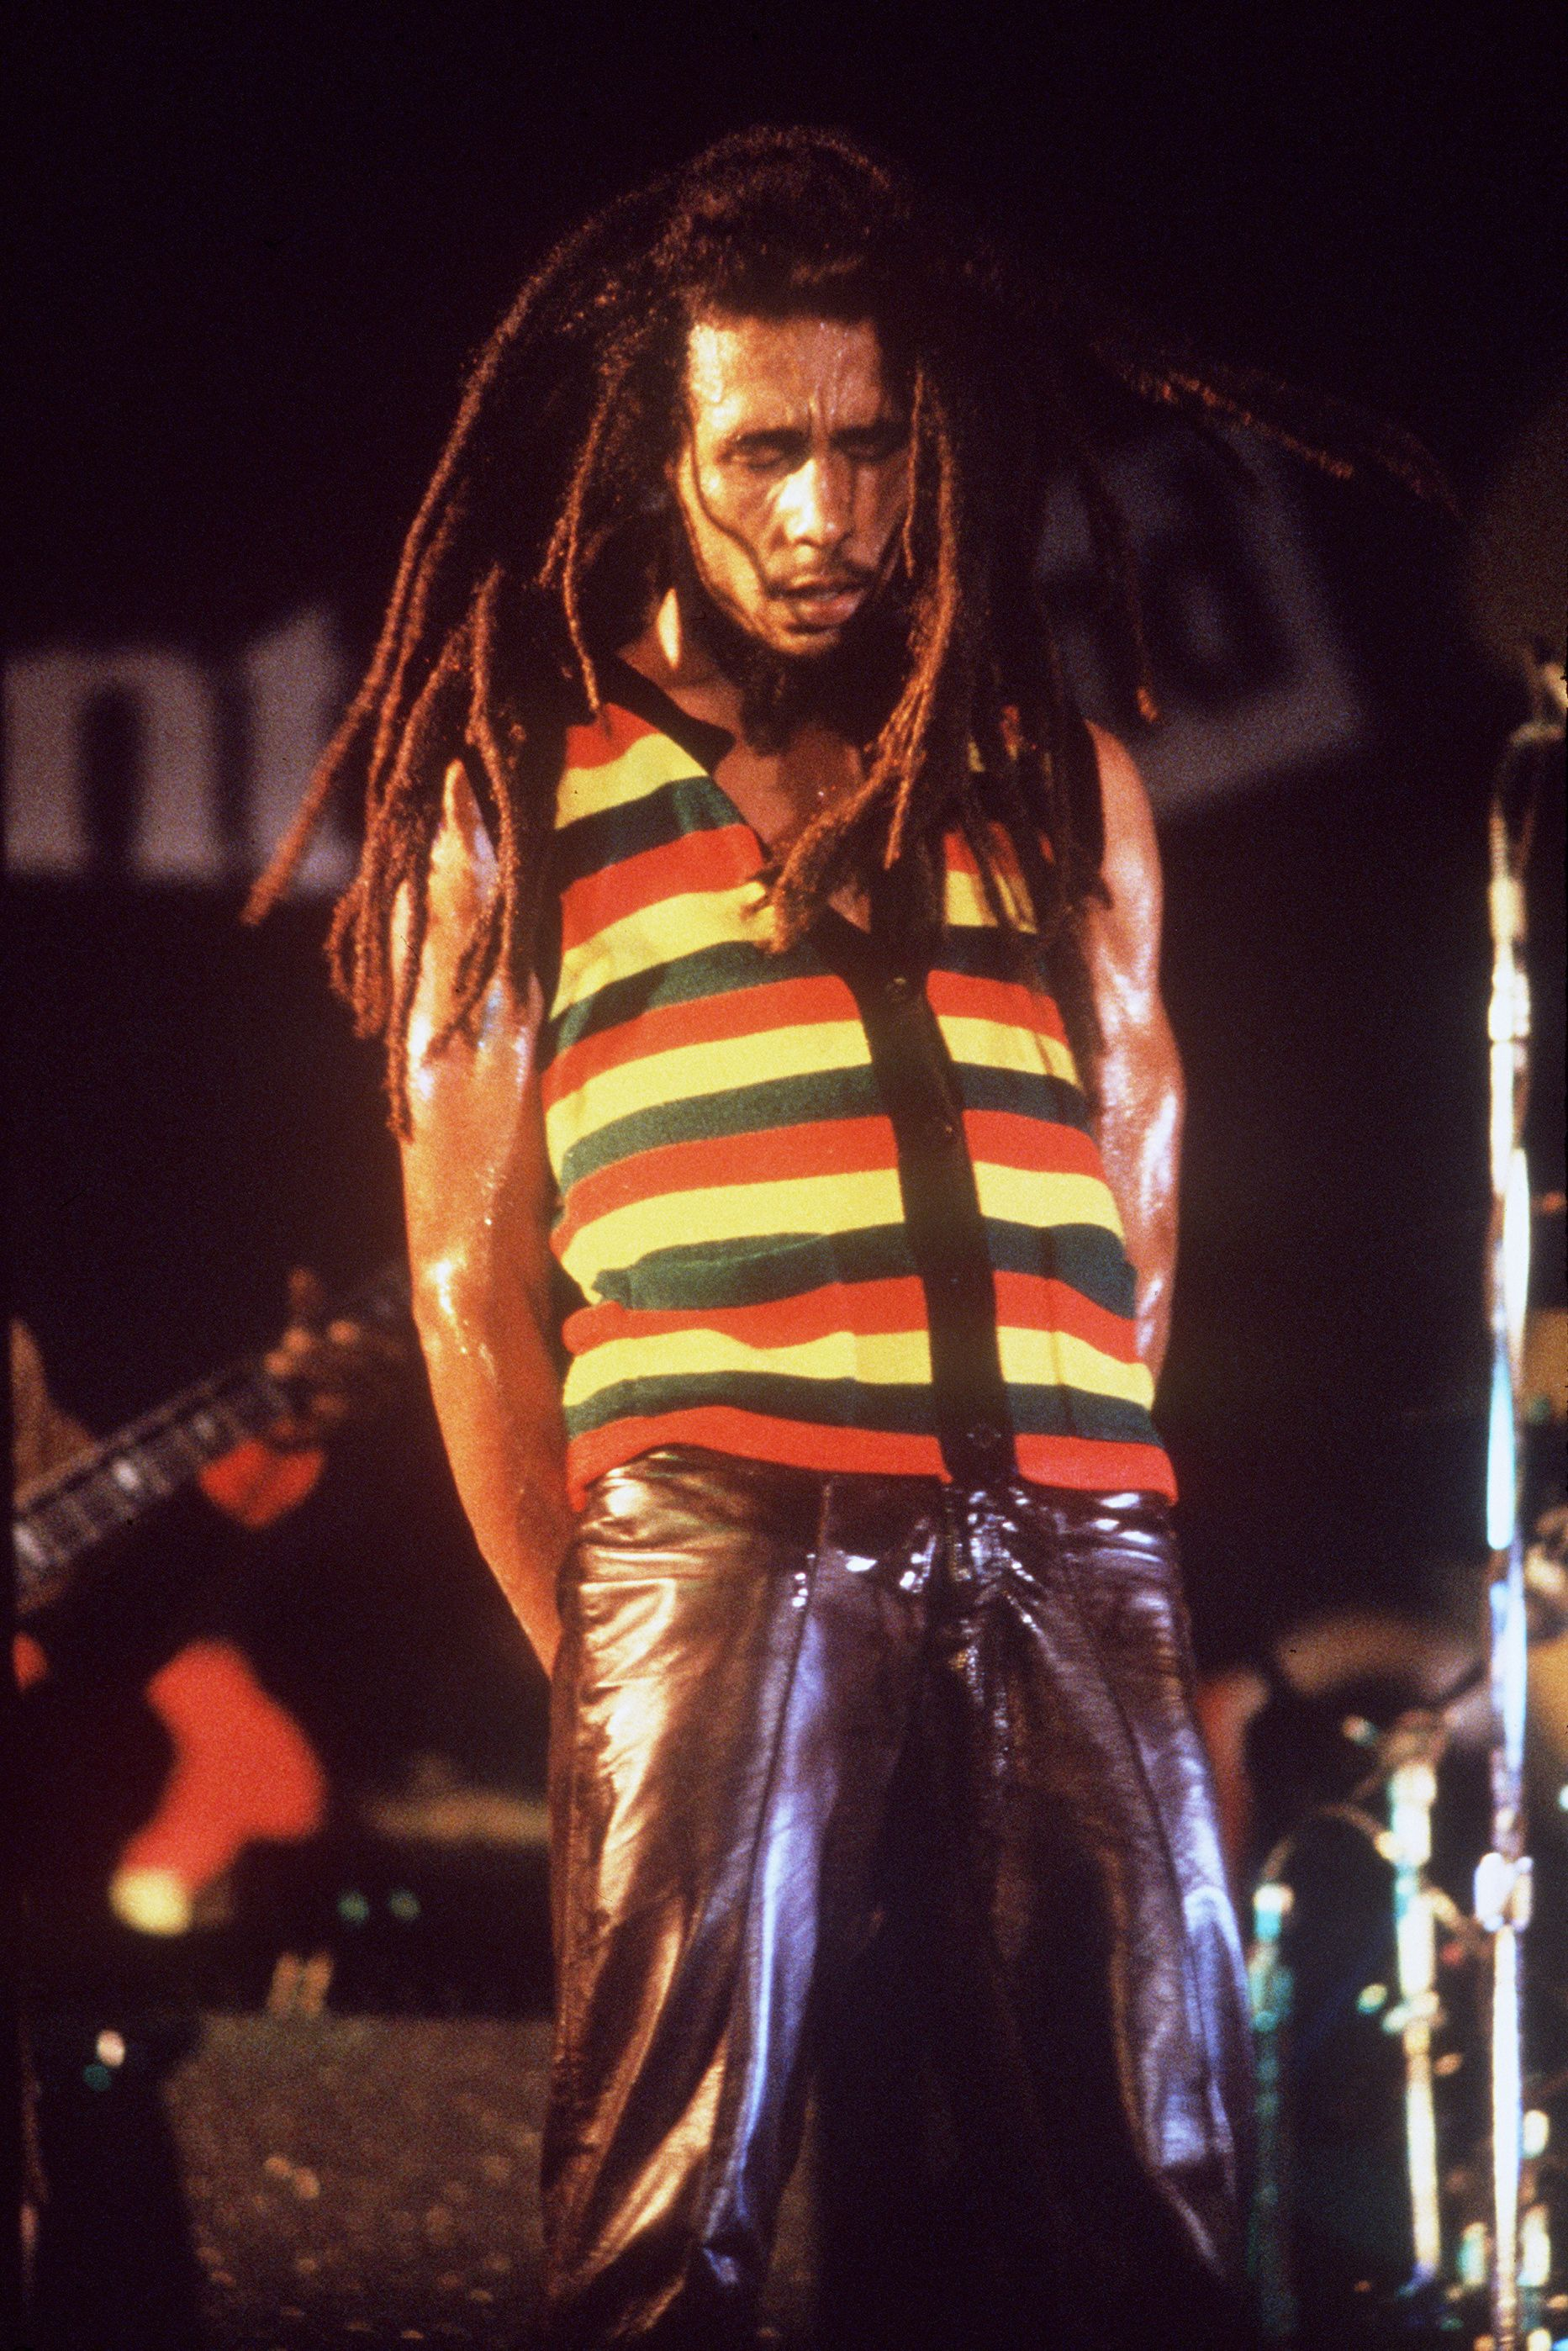 Bob Marley en 1979, durante el Raggae Sunsplash II, su último concierto en Jamaica (Peter Murphy/Fifty-Six Hope Road Music Ltd./REUTERS)